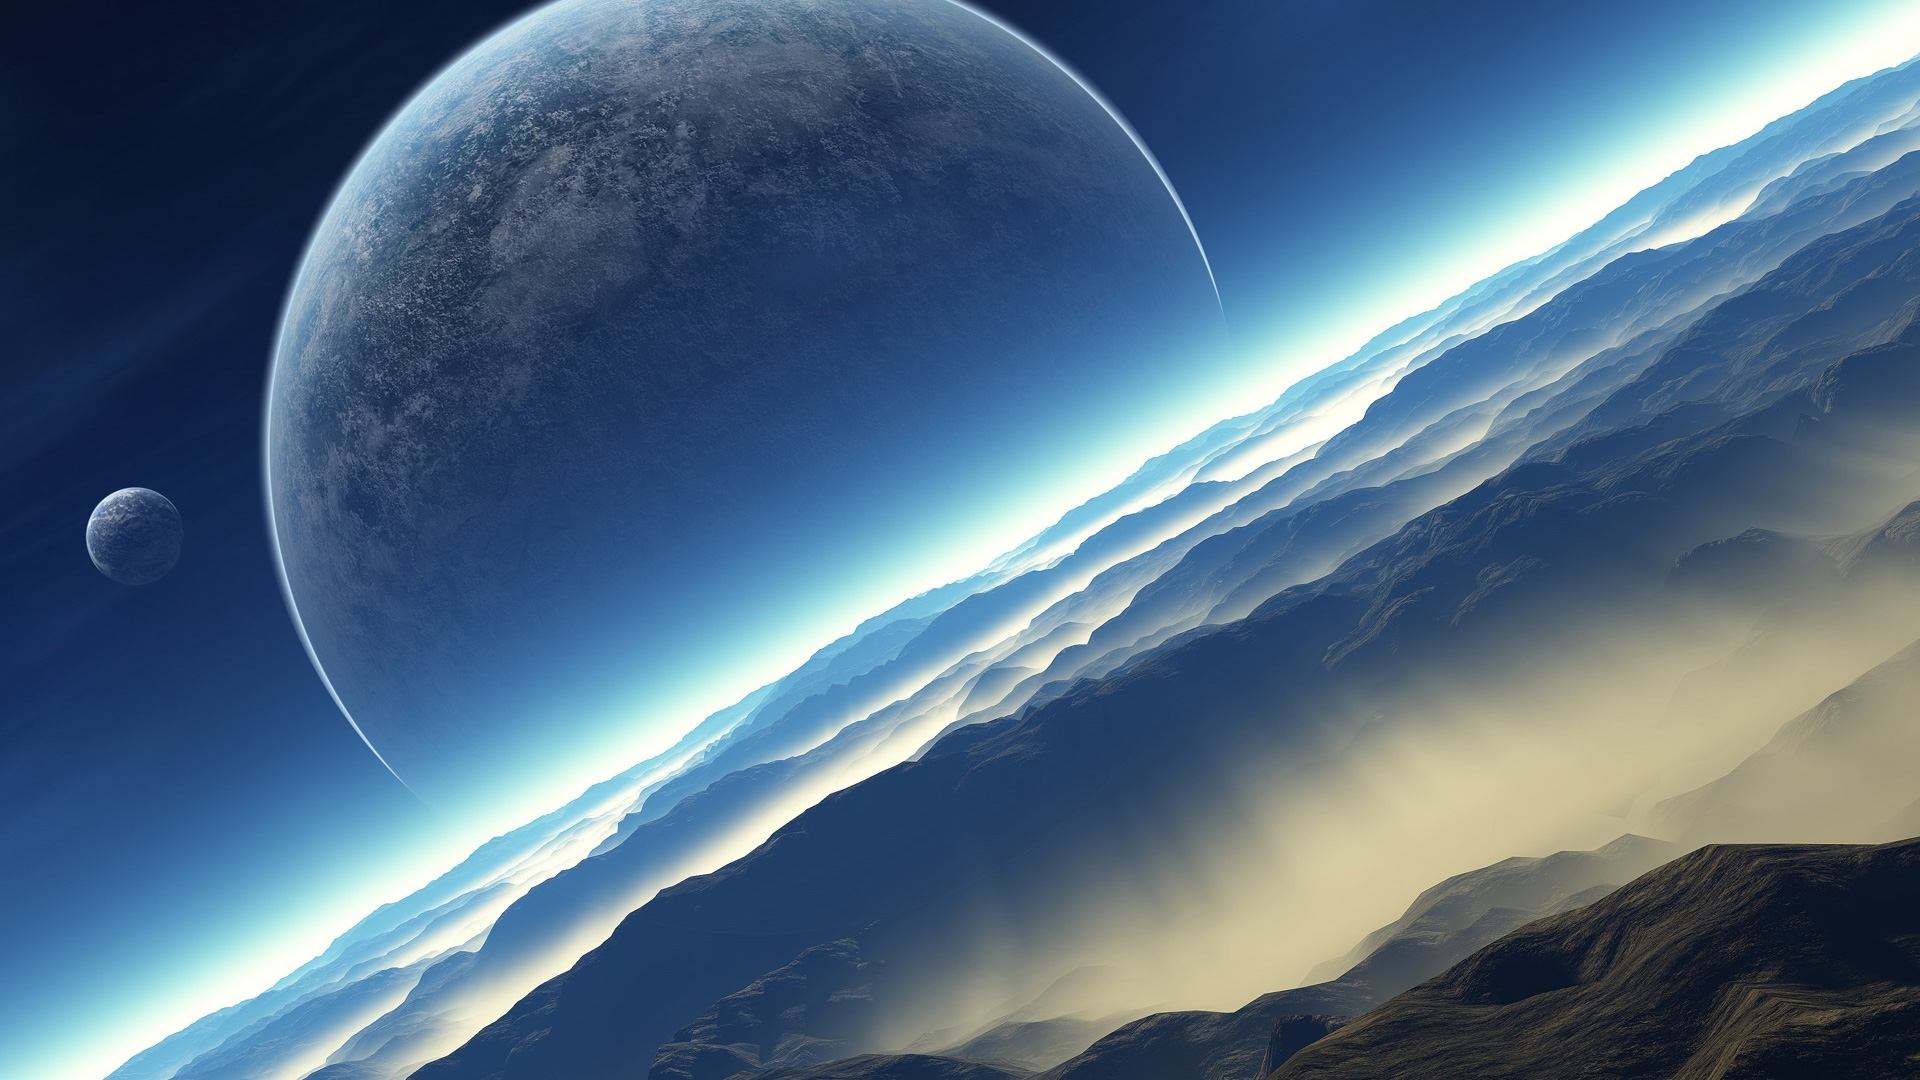 Free Download Space Full Hd Wallpapers Download 1080p